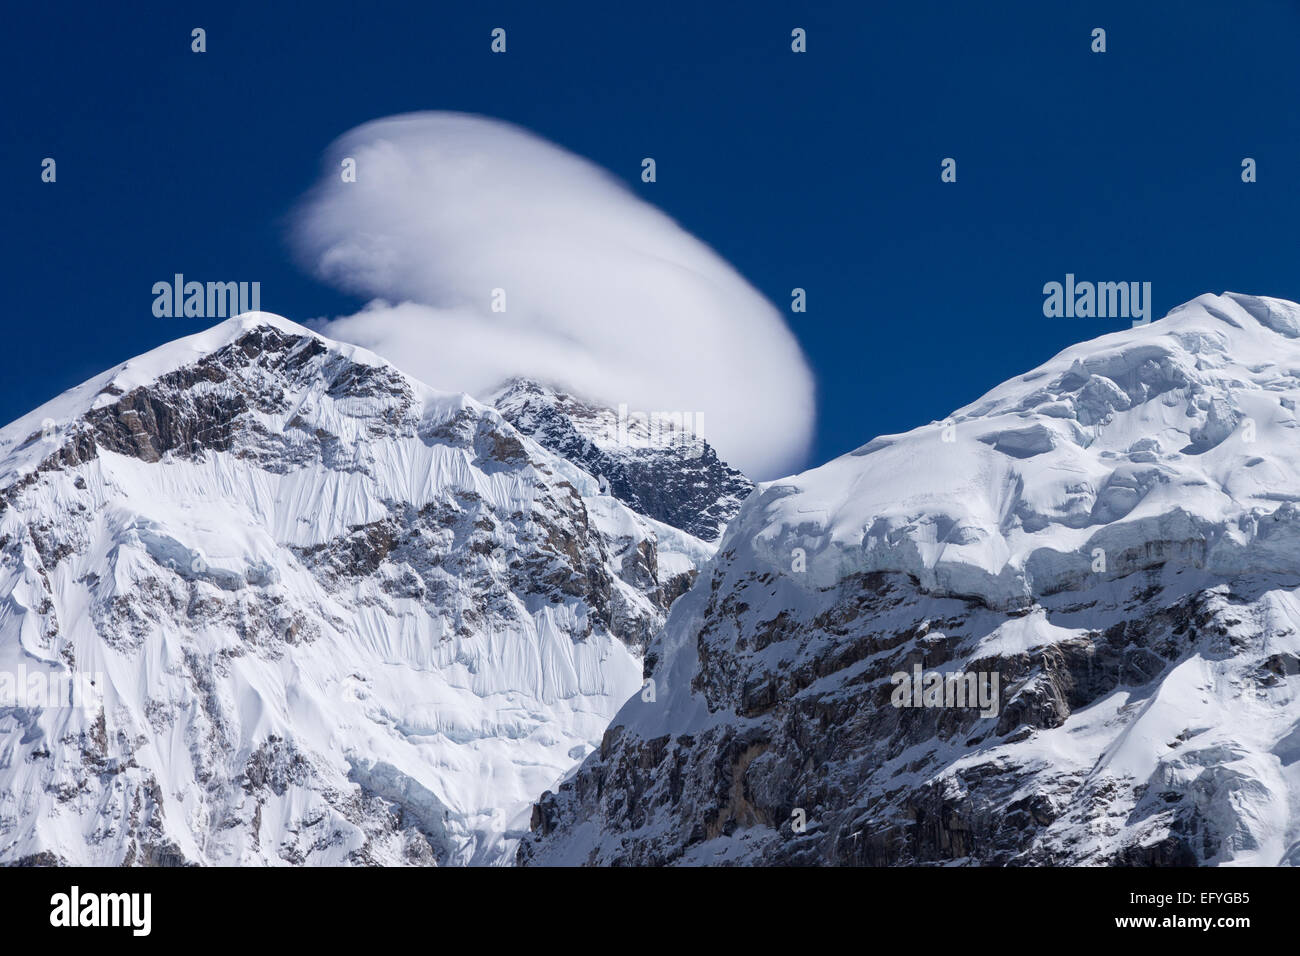 A storm brewing over Mount Everest - Stock Image